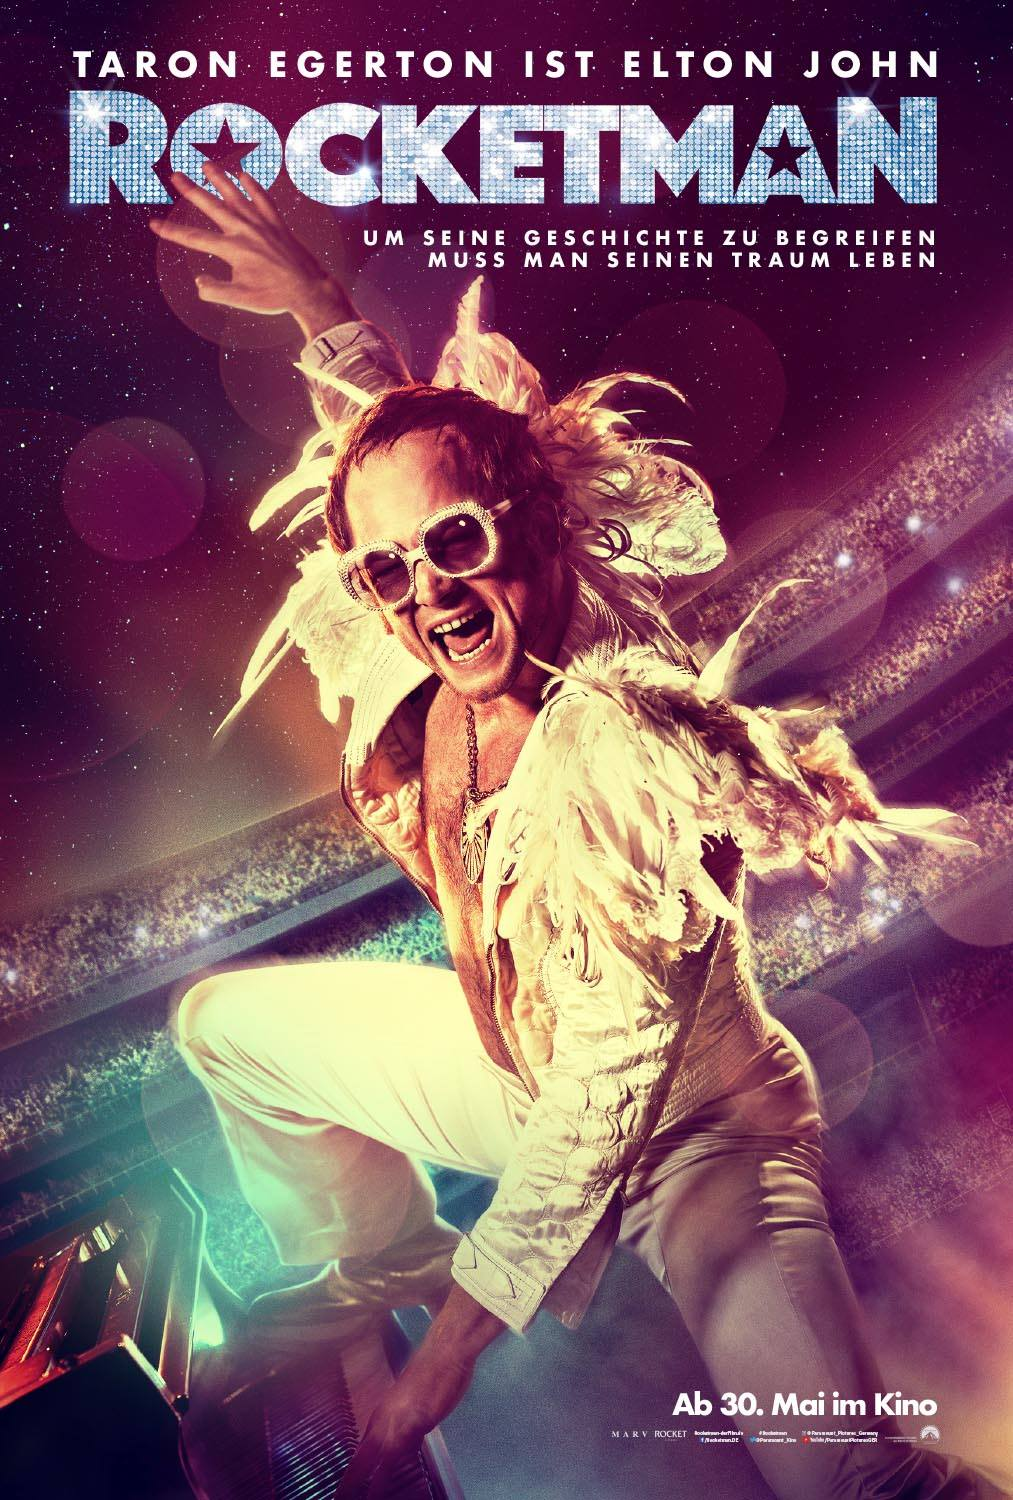 Rocketman Film 2019 Trailer Kritik Kinode